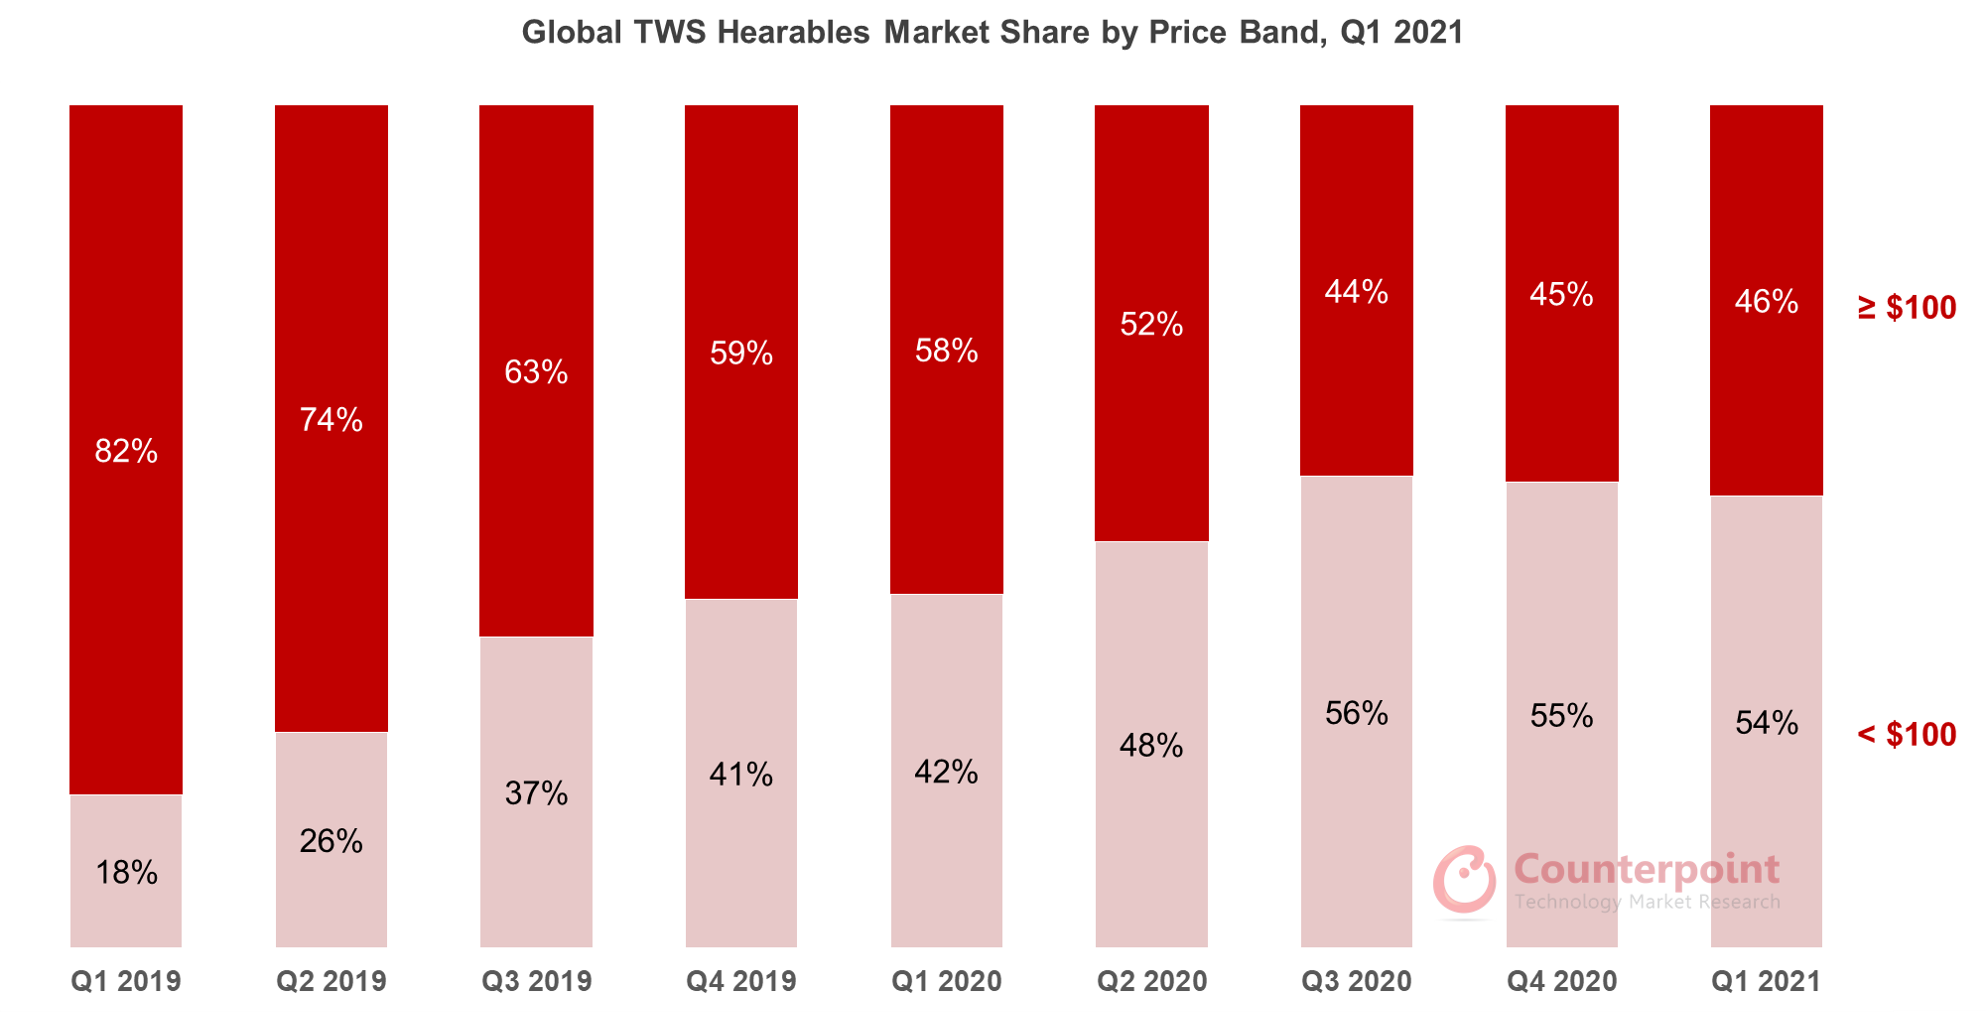 Counterpoint Research Global TWS Hearables Market Share by Price Band, Q1 2021